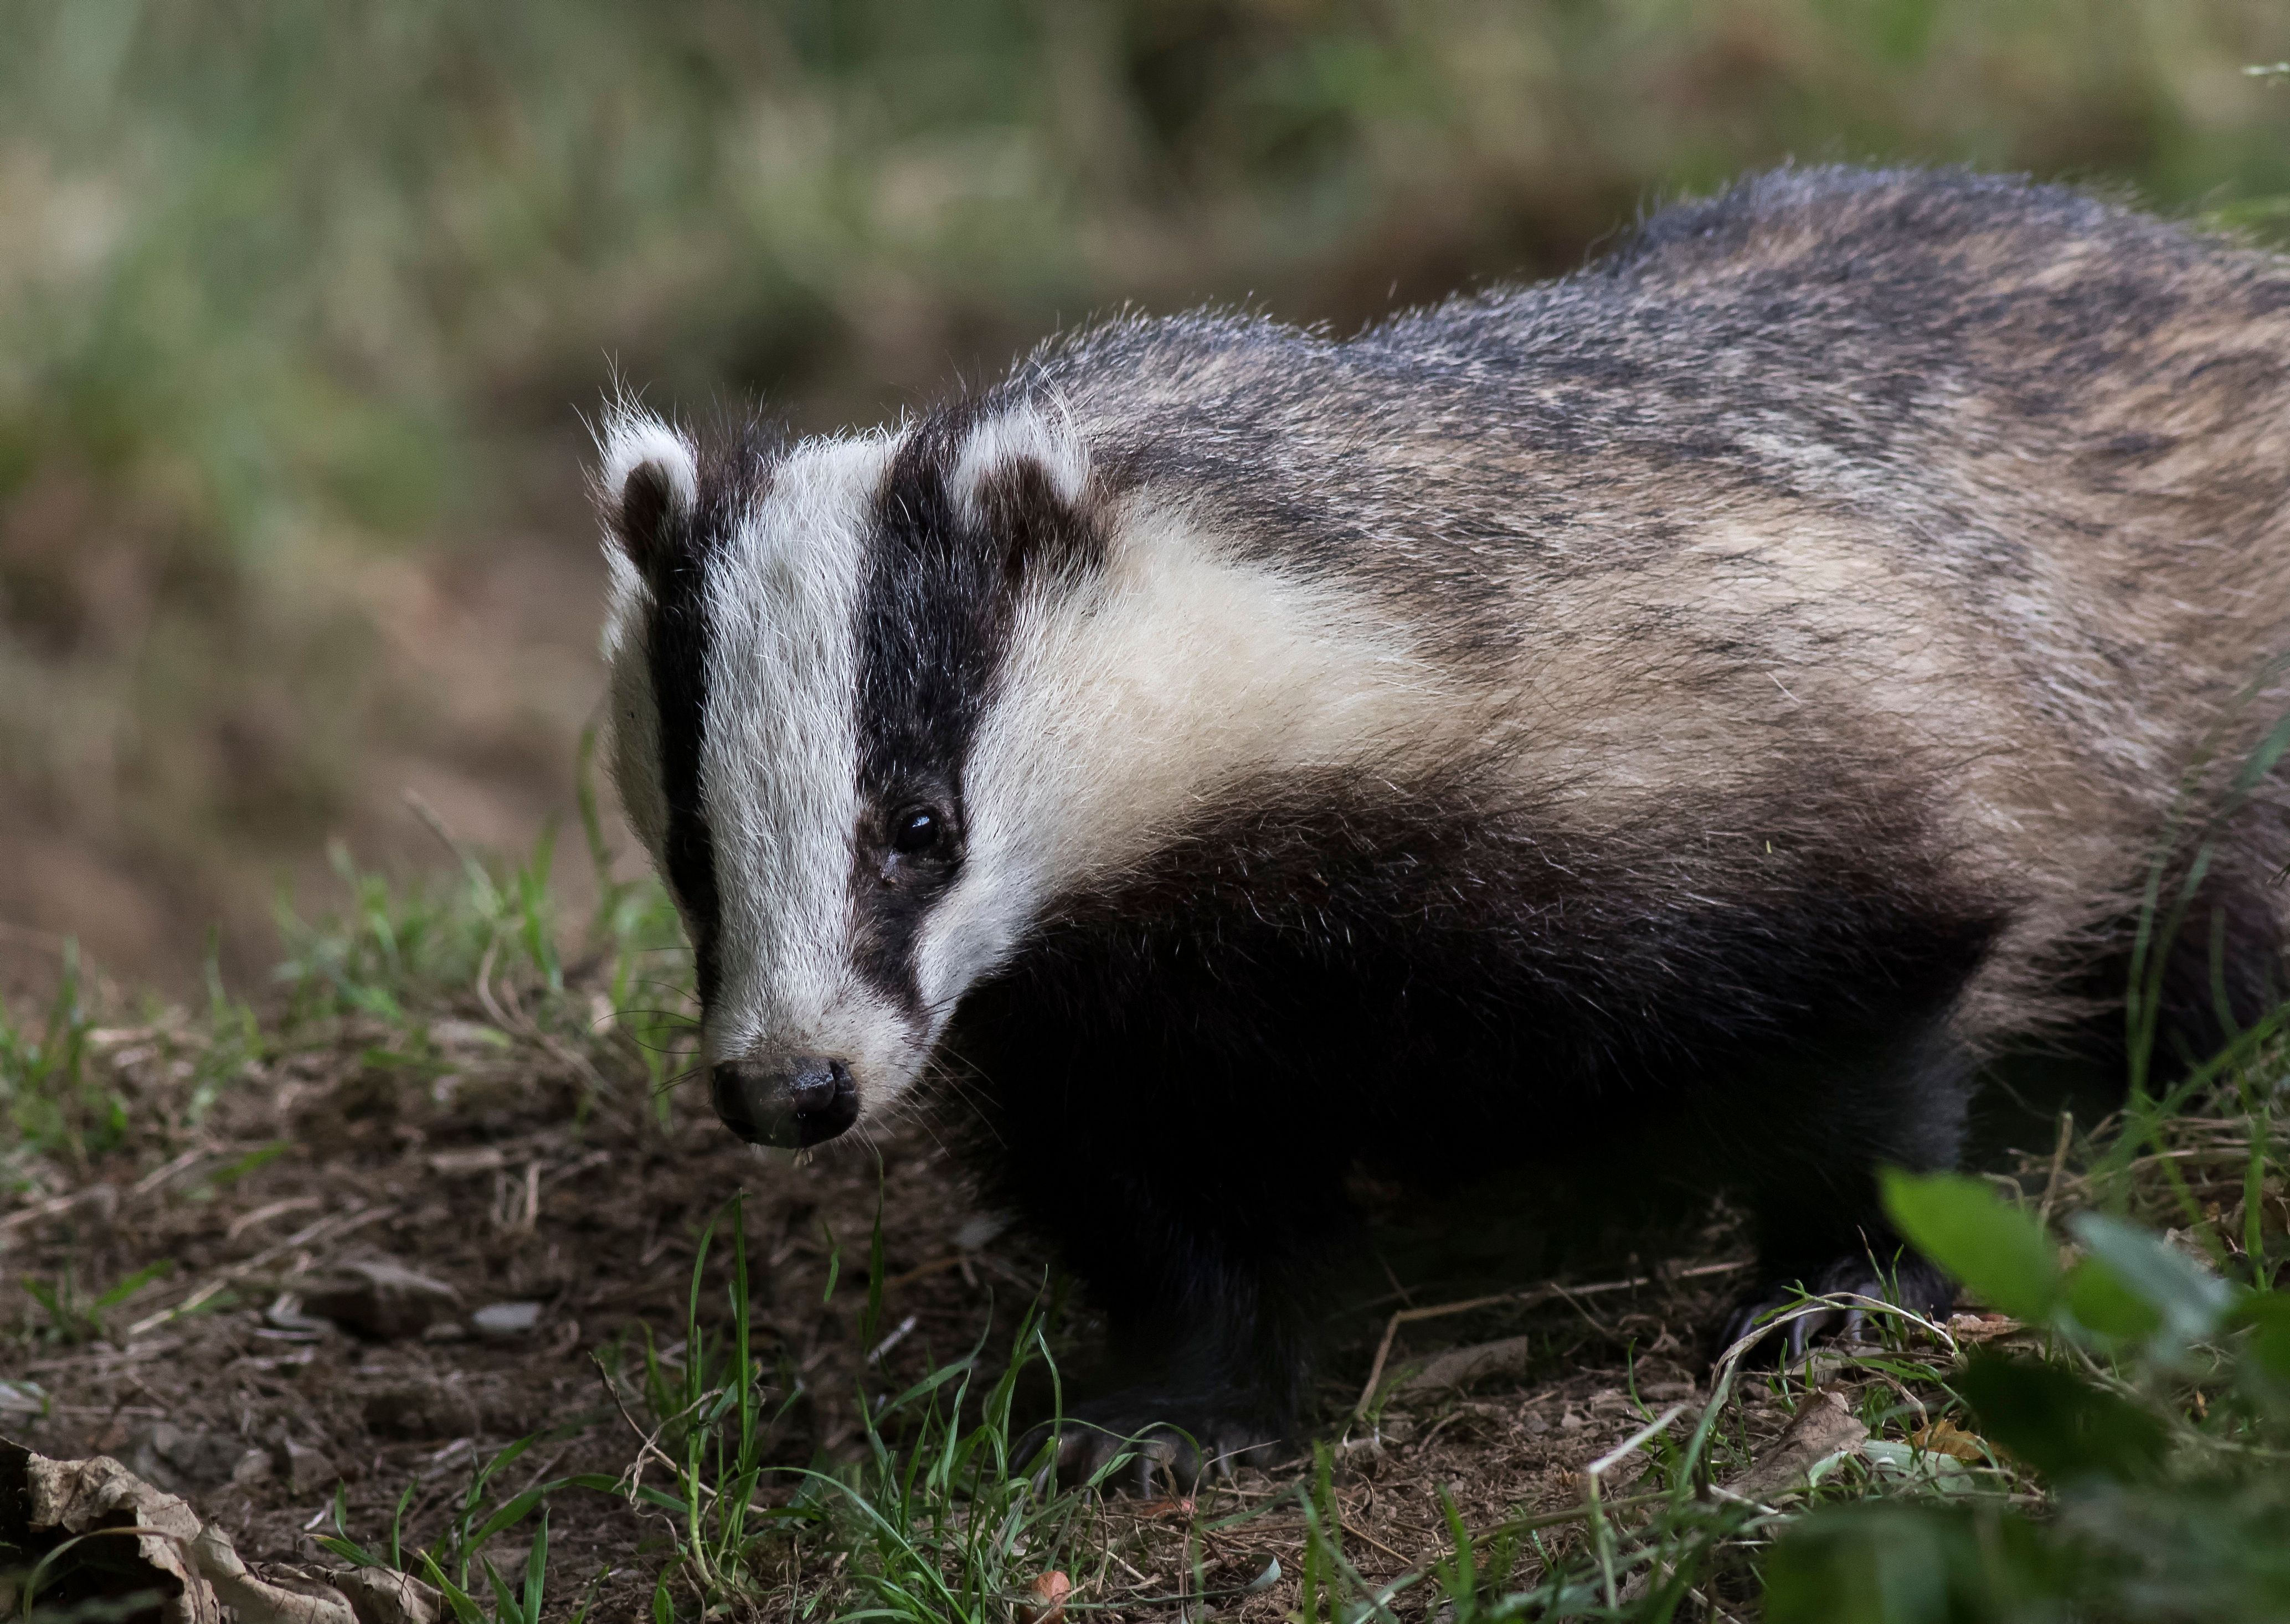 Vets Accuse Ministers Of Telling 'Barefaced Lies' About Badger Cull